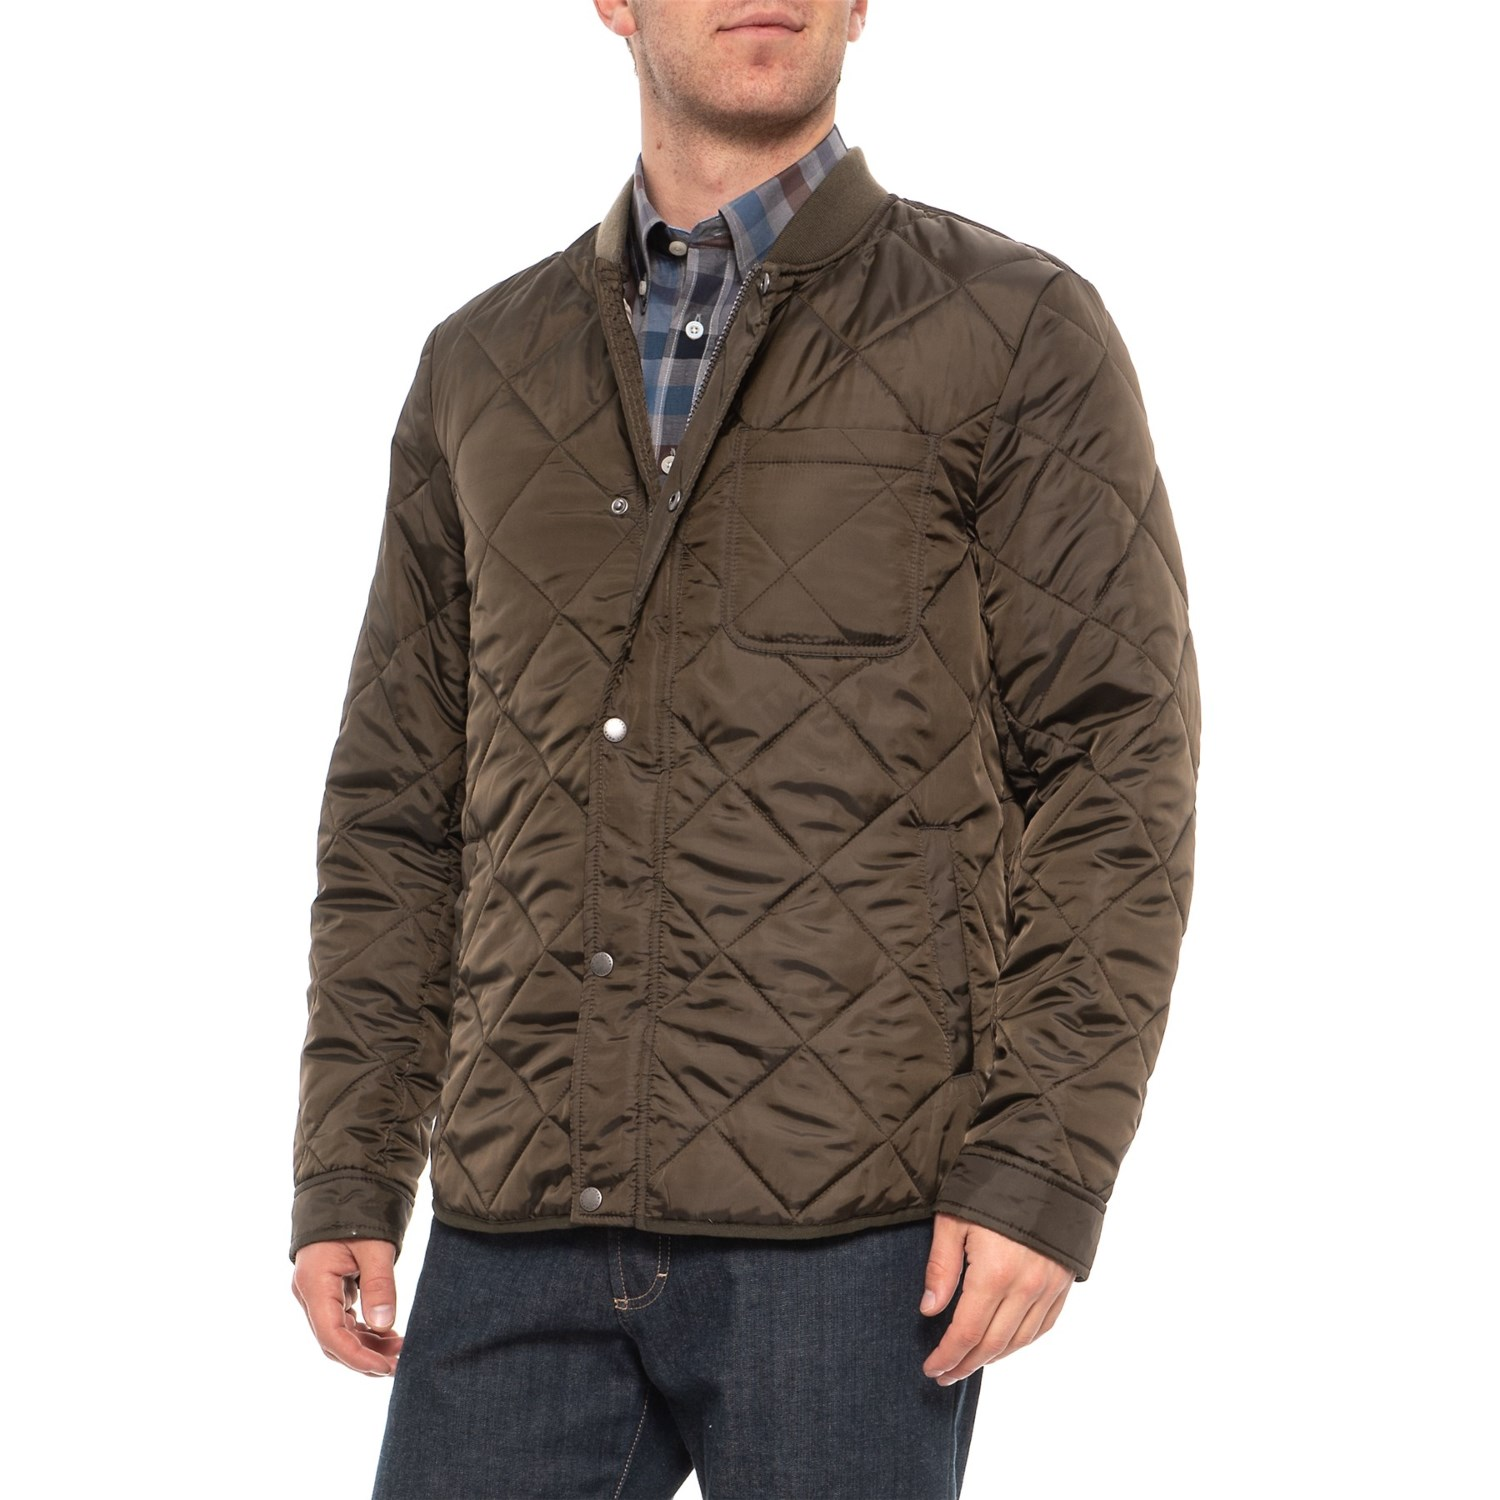 Cole Haan Quilted Men's Jacket